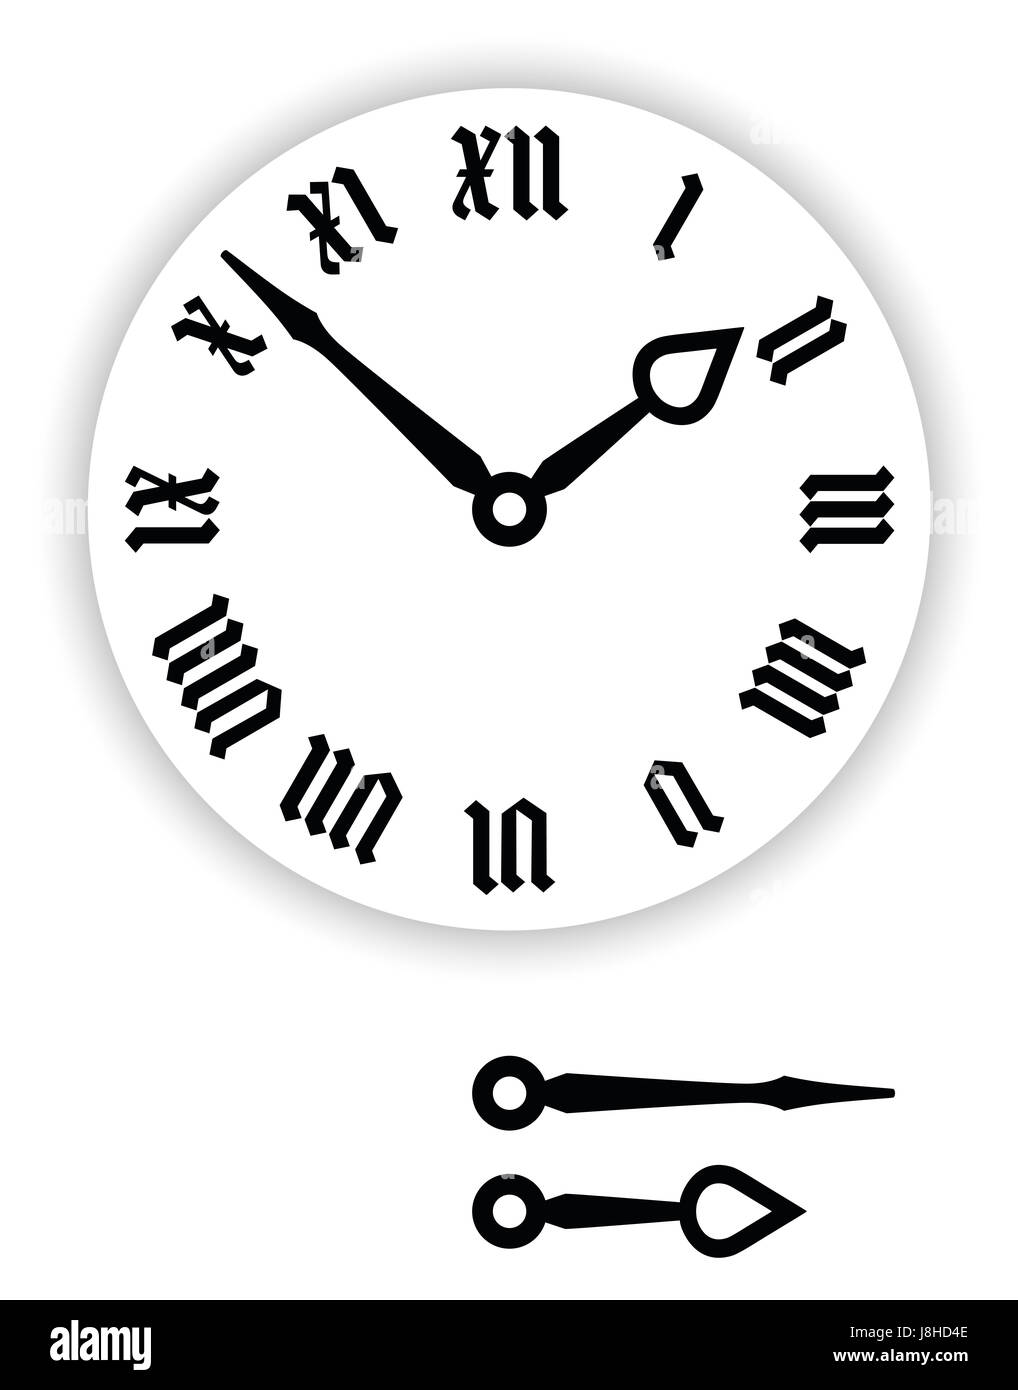 Fraktur Roman numerals clock face. Part of analog clock with black pointers. Dial with blackletter numerals, also - Stock Image